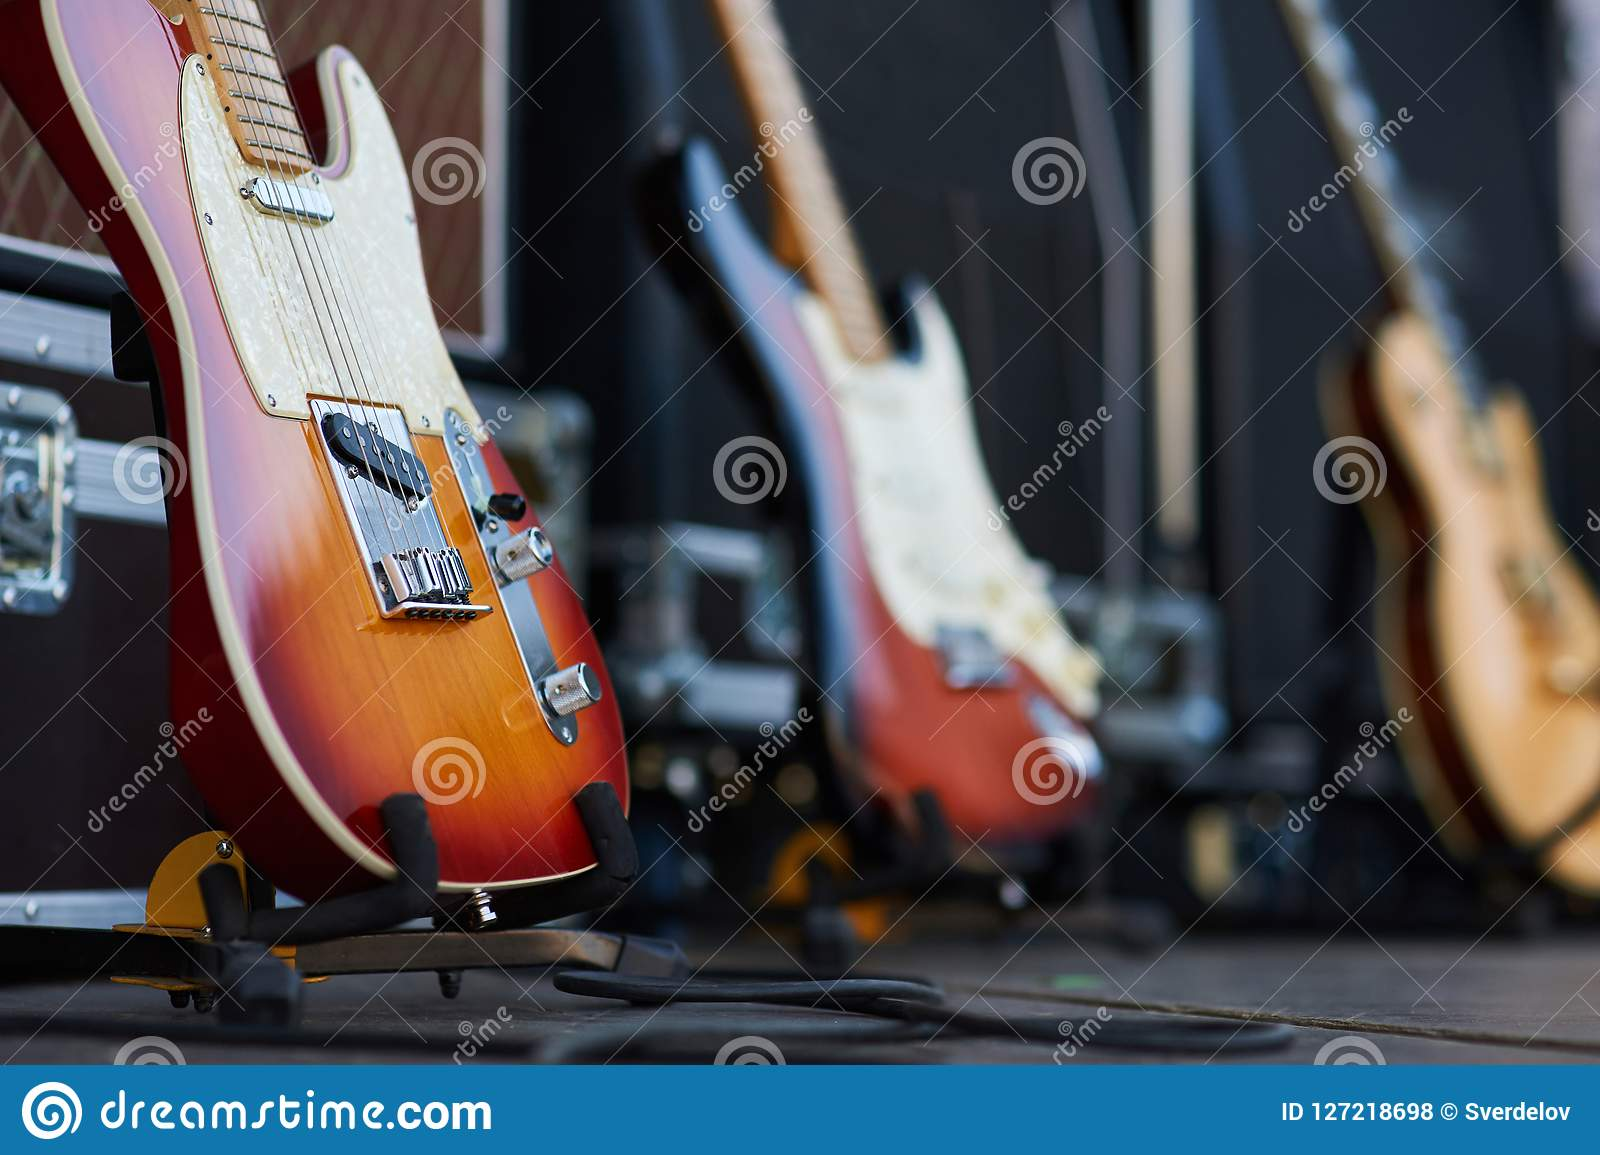 Amplifier with electric guitar on the stage. music instrument set for guitarist. no people